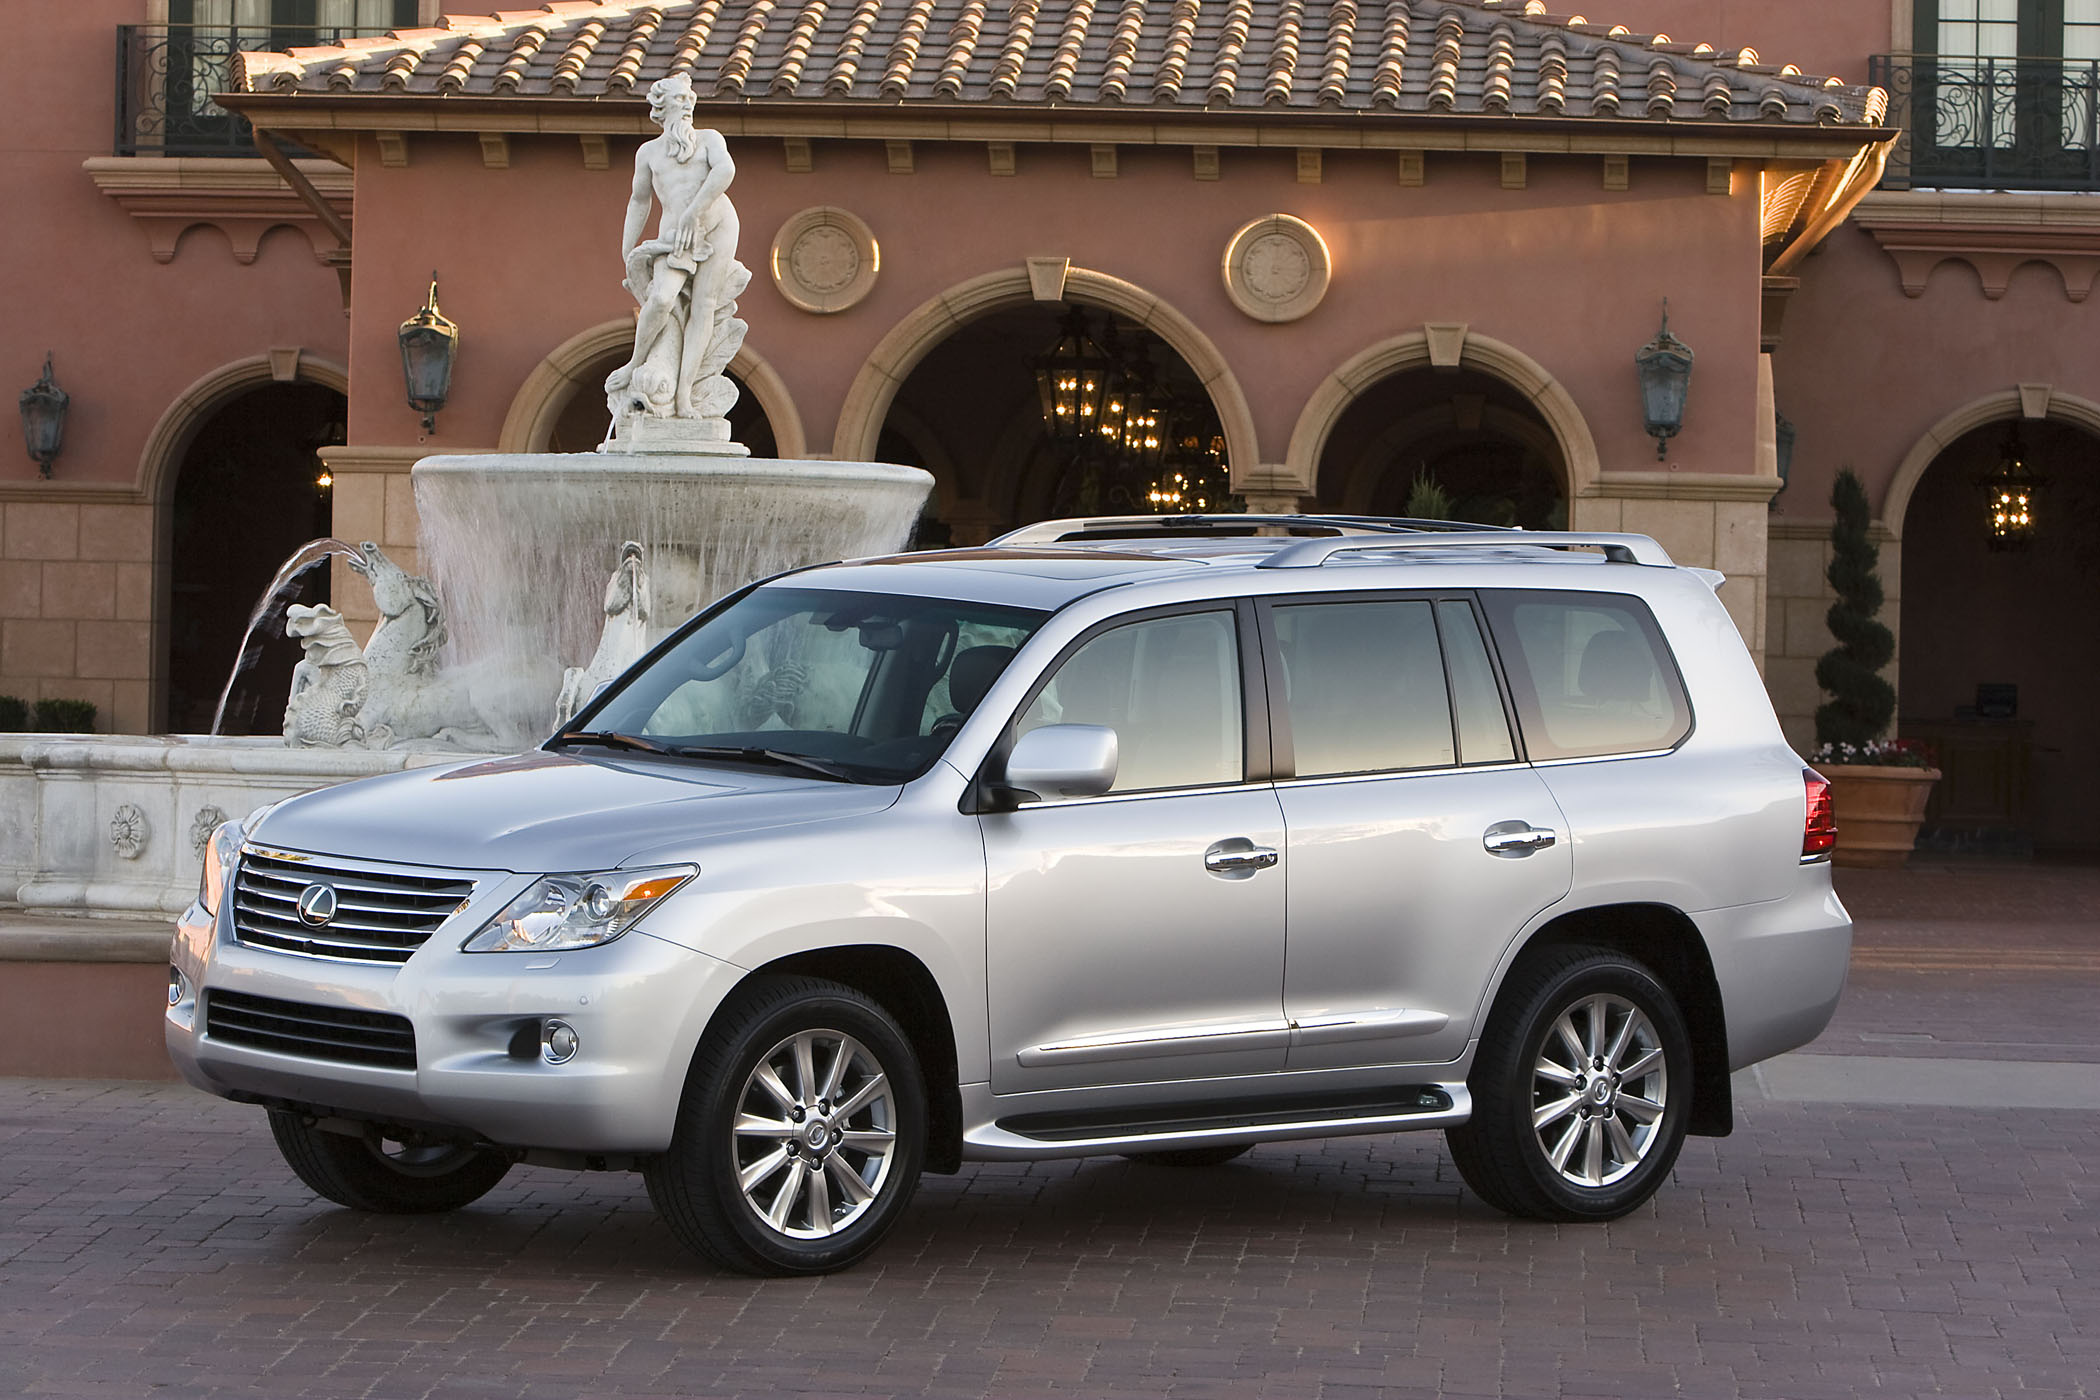 2010 lexus lx 570 is off road capable confident anywhere. Black Bedroom Furniture Sets. Home Design Ideas